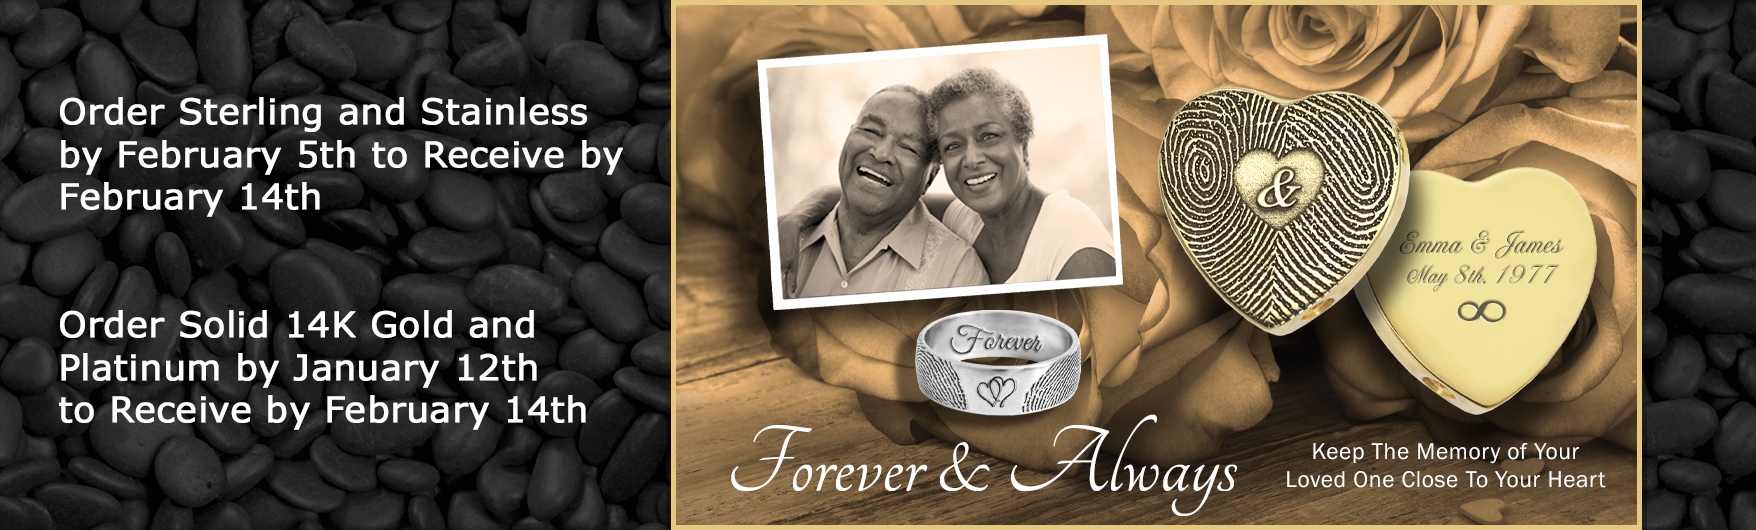 personalized memorial jewelry for valentine's day